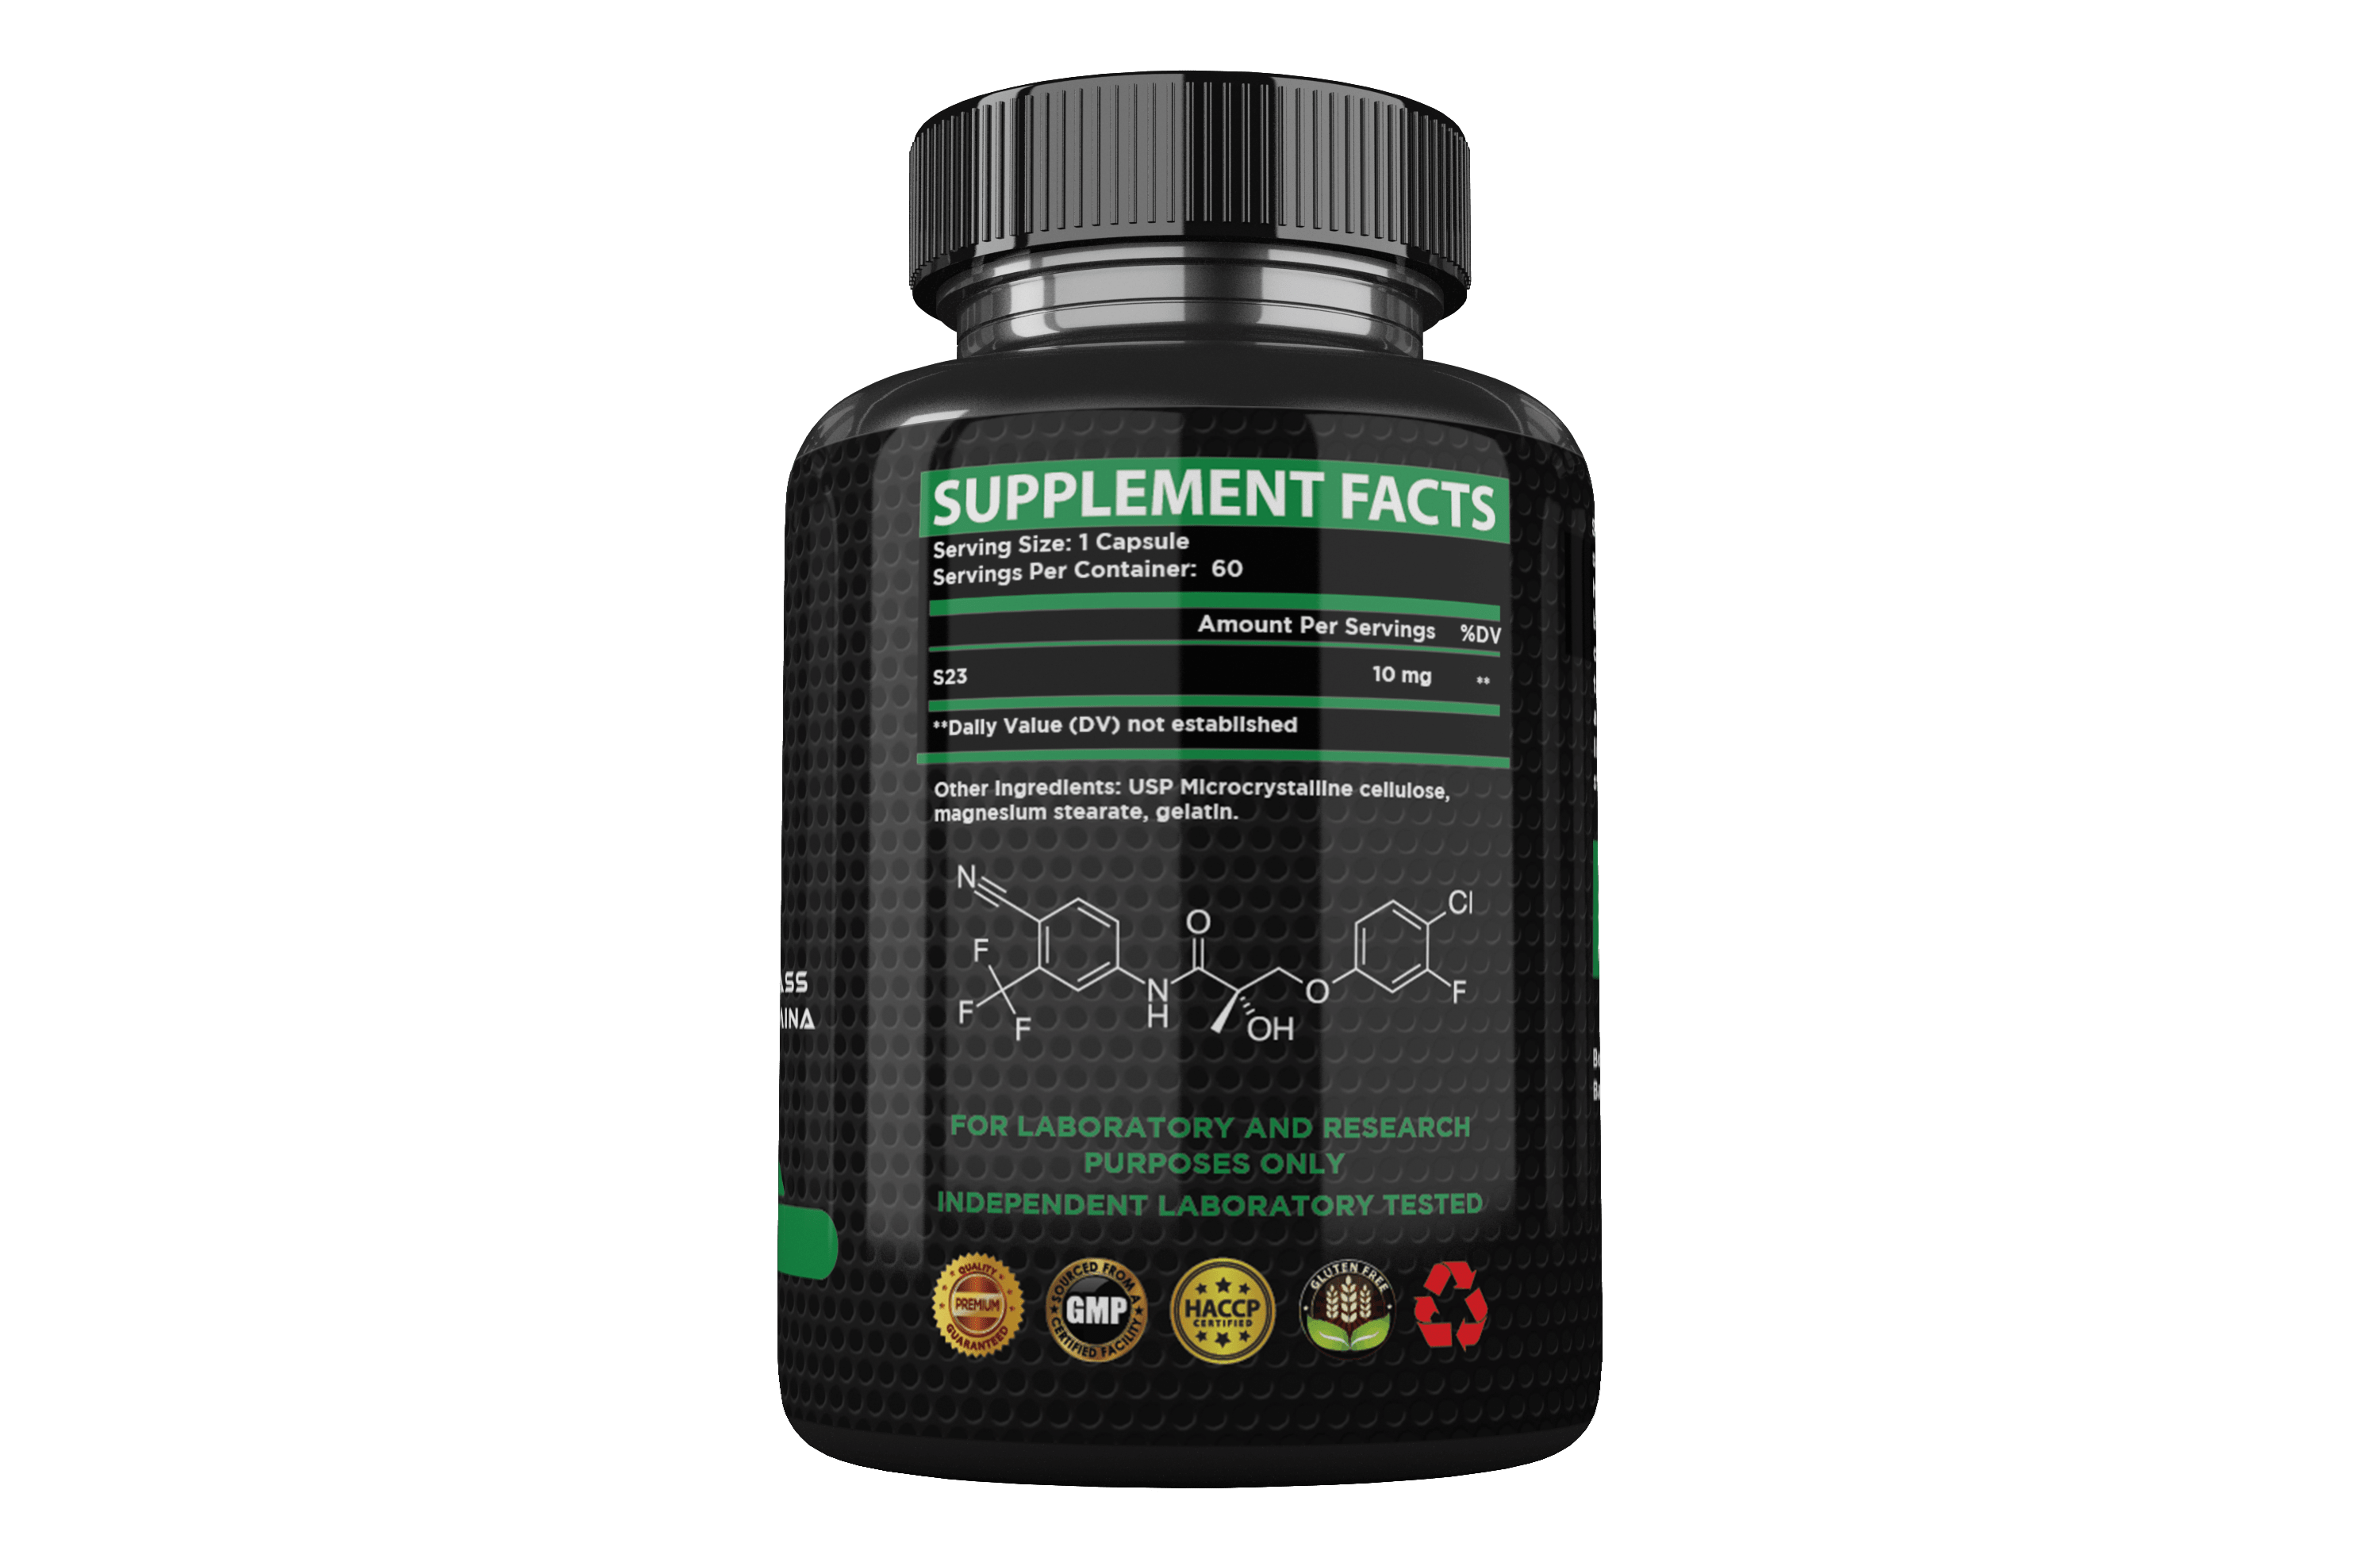 S23 - Helps build lean muscle mass increase stenght and stamina decrease bodyfat